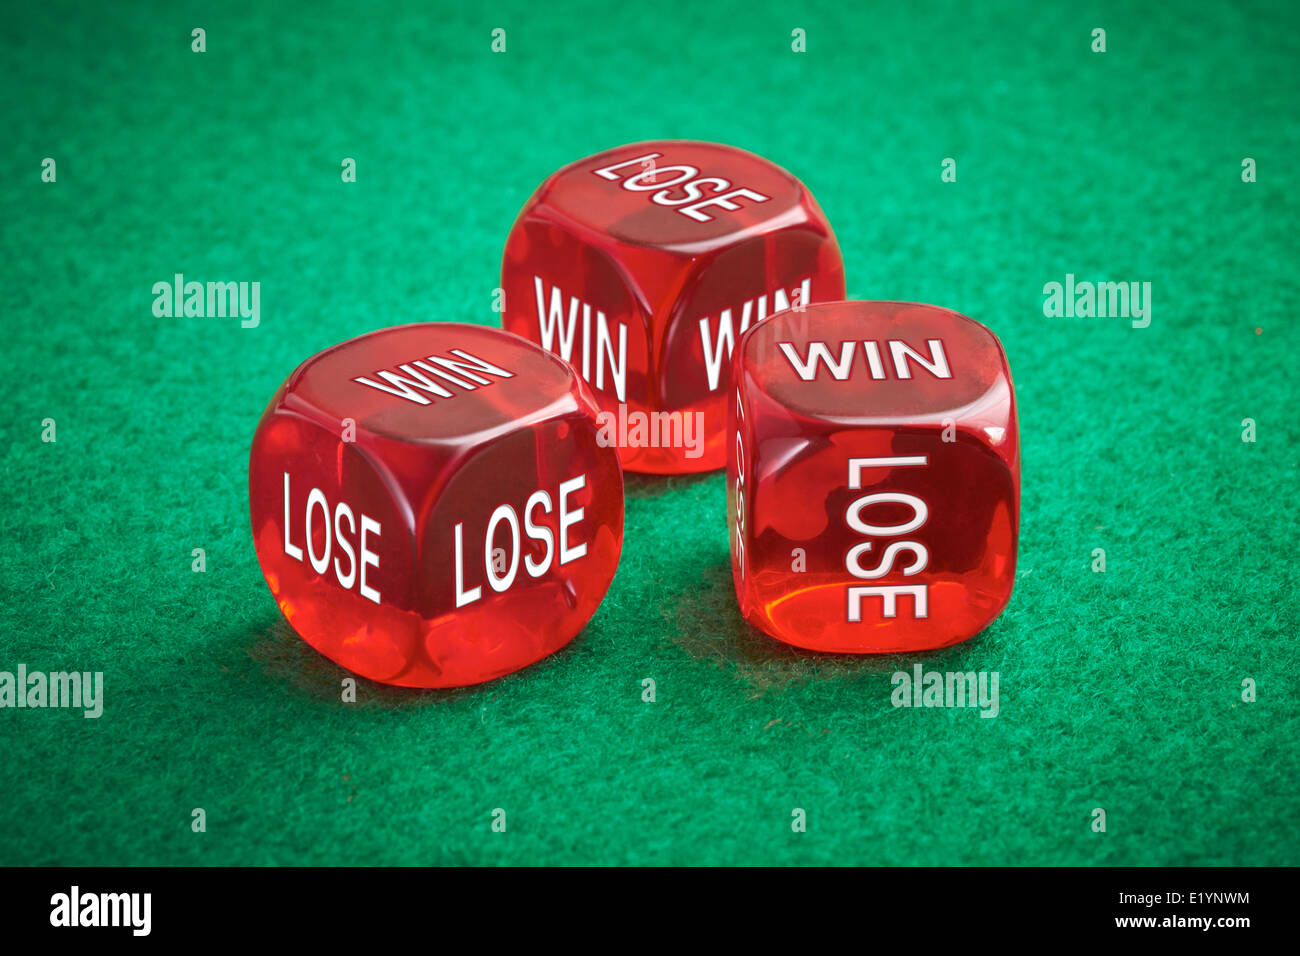 Chance concept, three red dice on a green felt background. - Stock Image